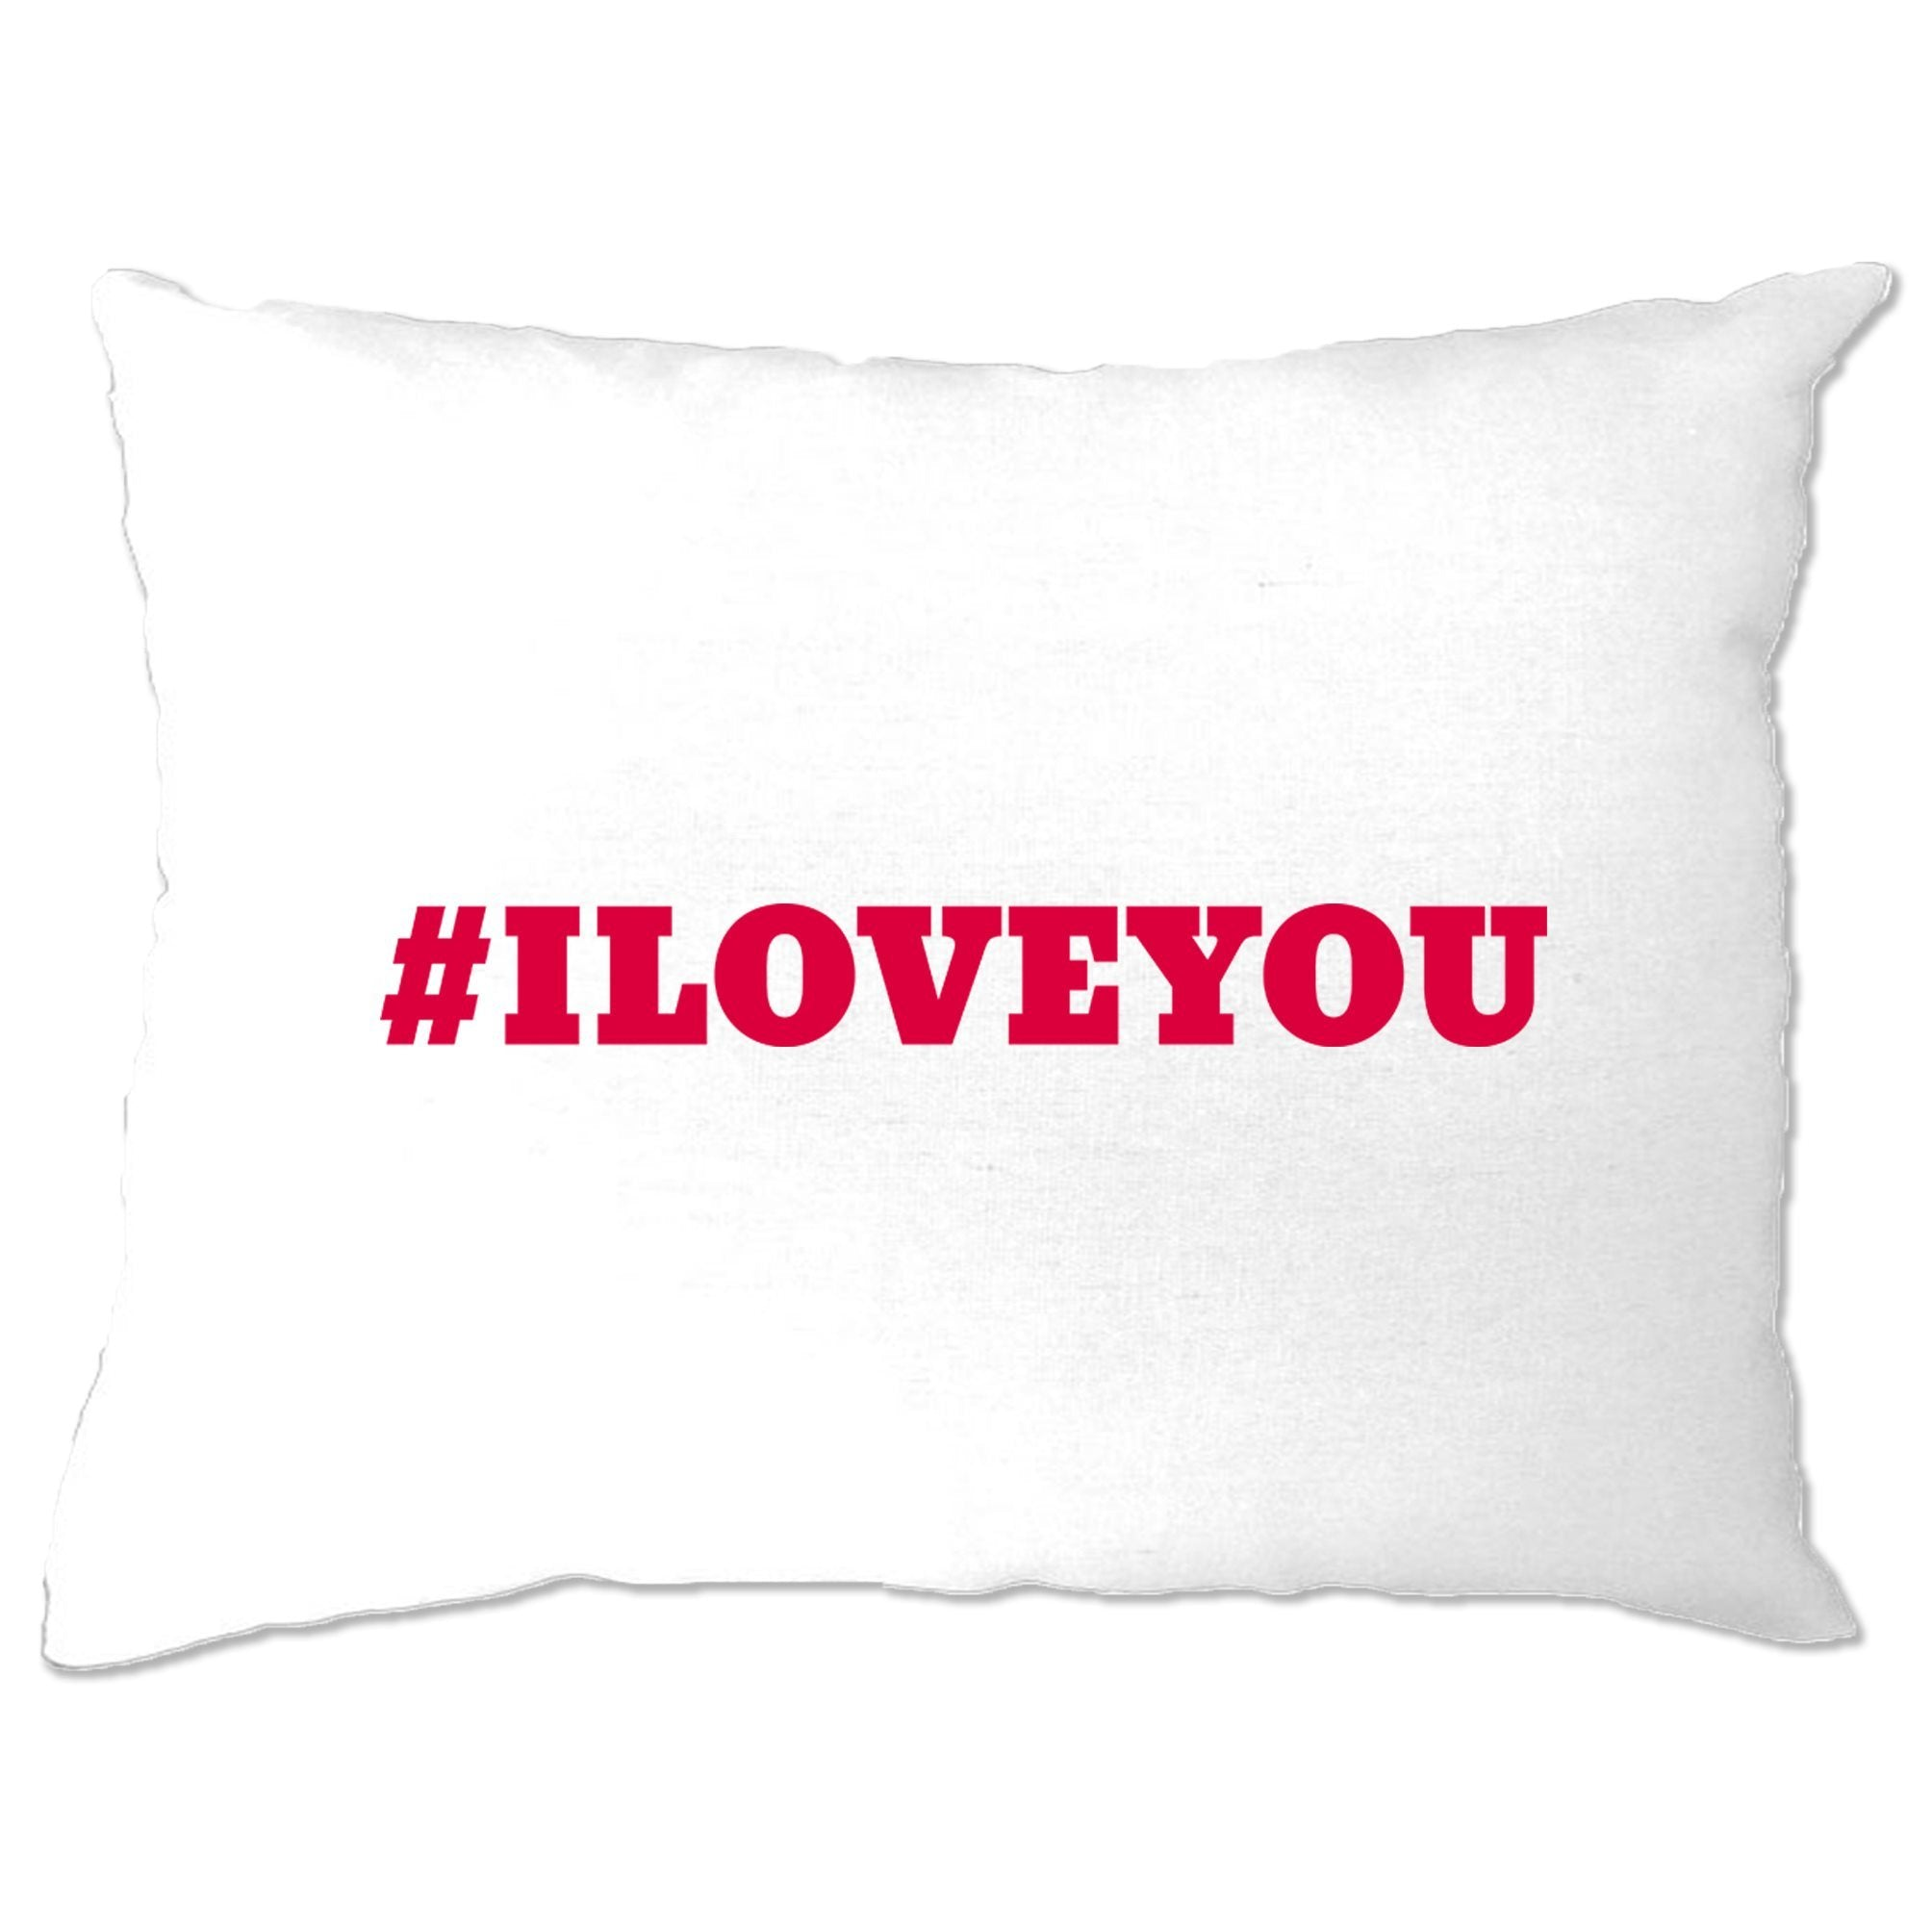 Trendy Internet Pillow Case Hashtag I LOVE YOU